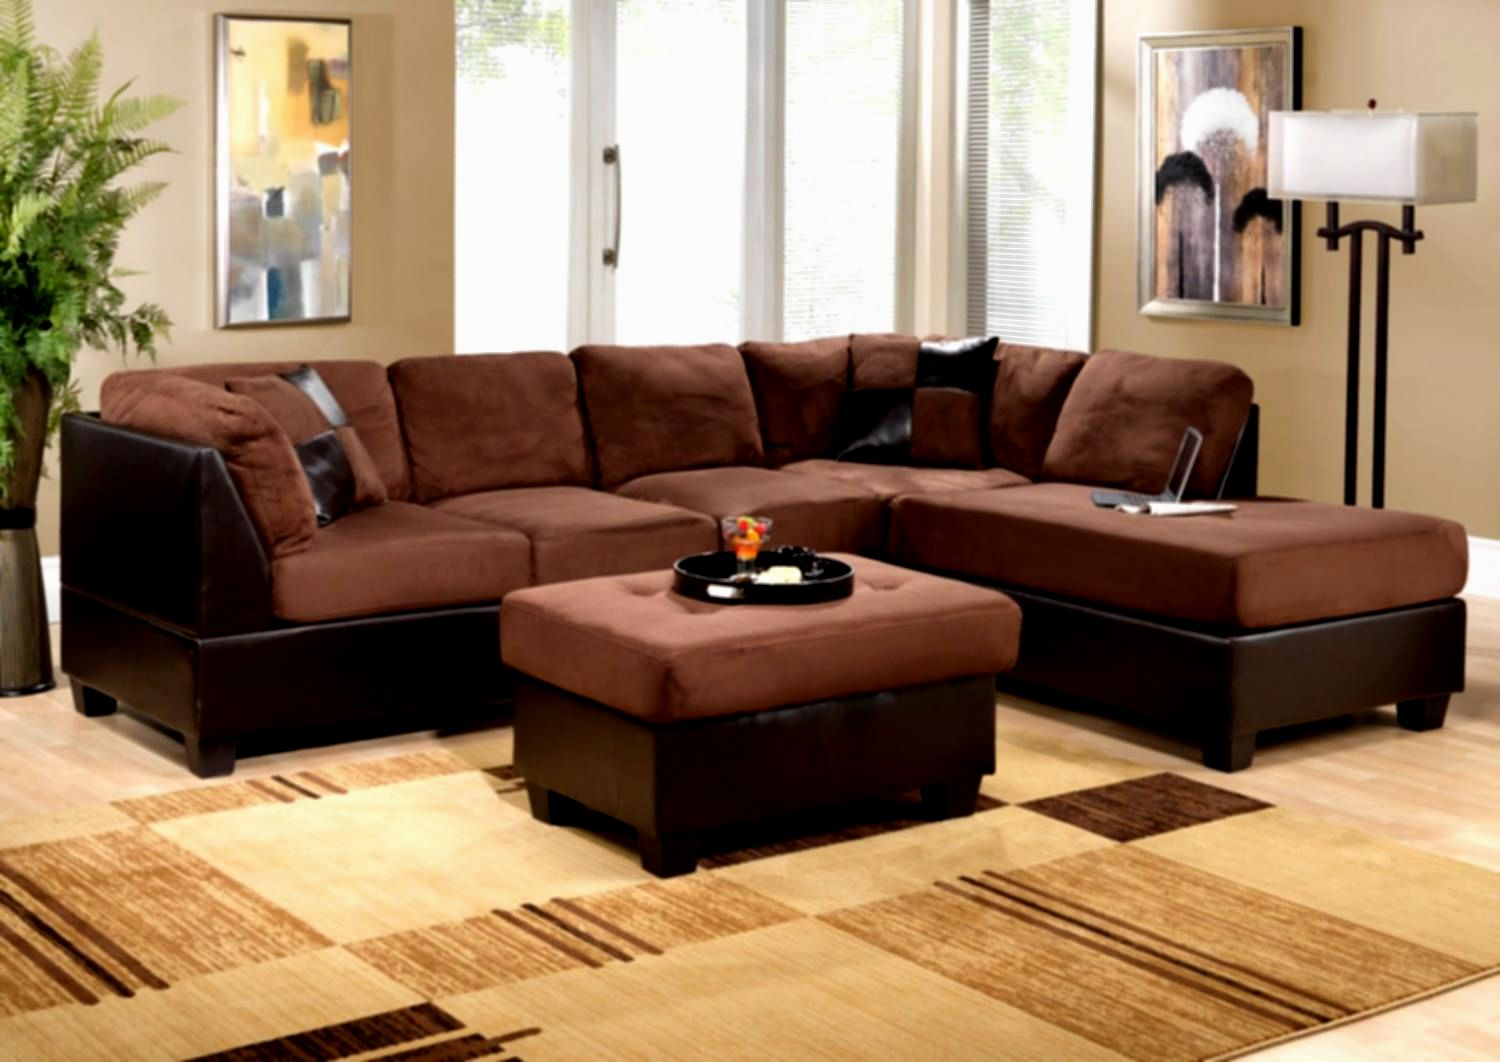 beautiful distressed leather sofa collection-Best Of Distressed Leather sofa Picture